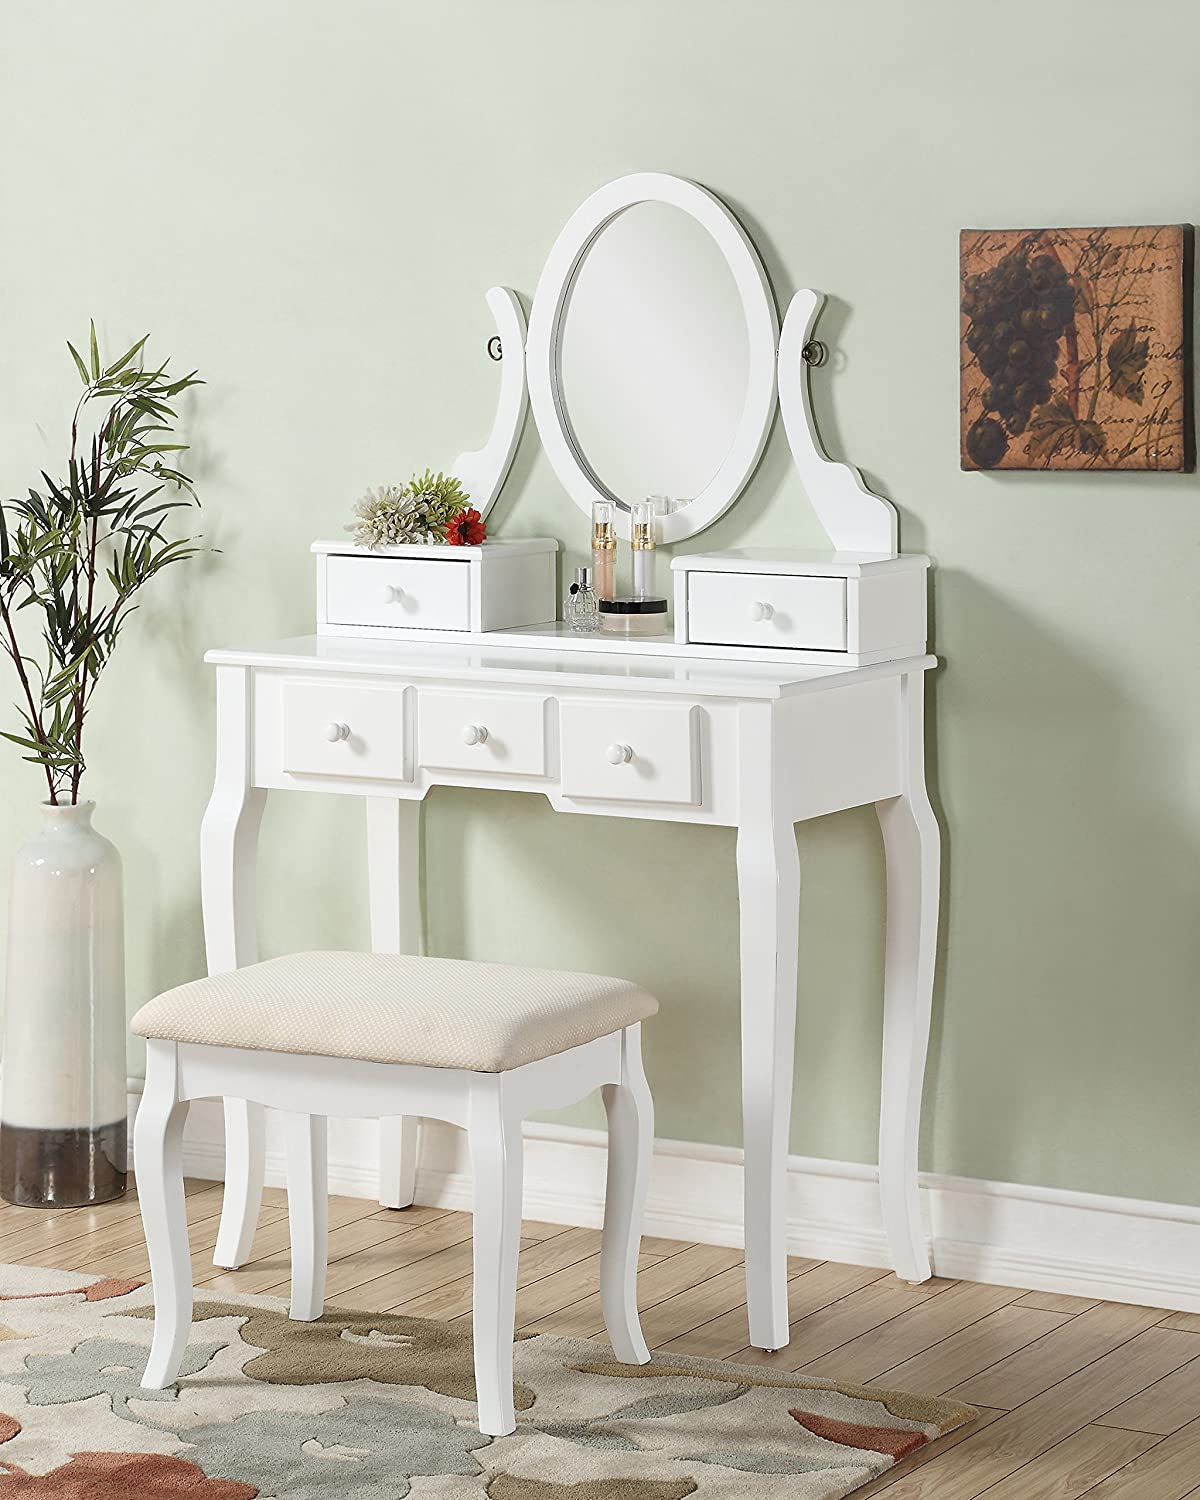 3-Piece Wood Make-Up Mirror Vanity Dresser Table and Stool Set, White eHomeProducts